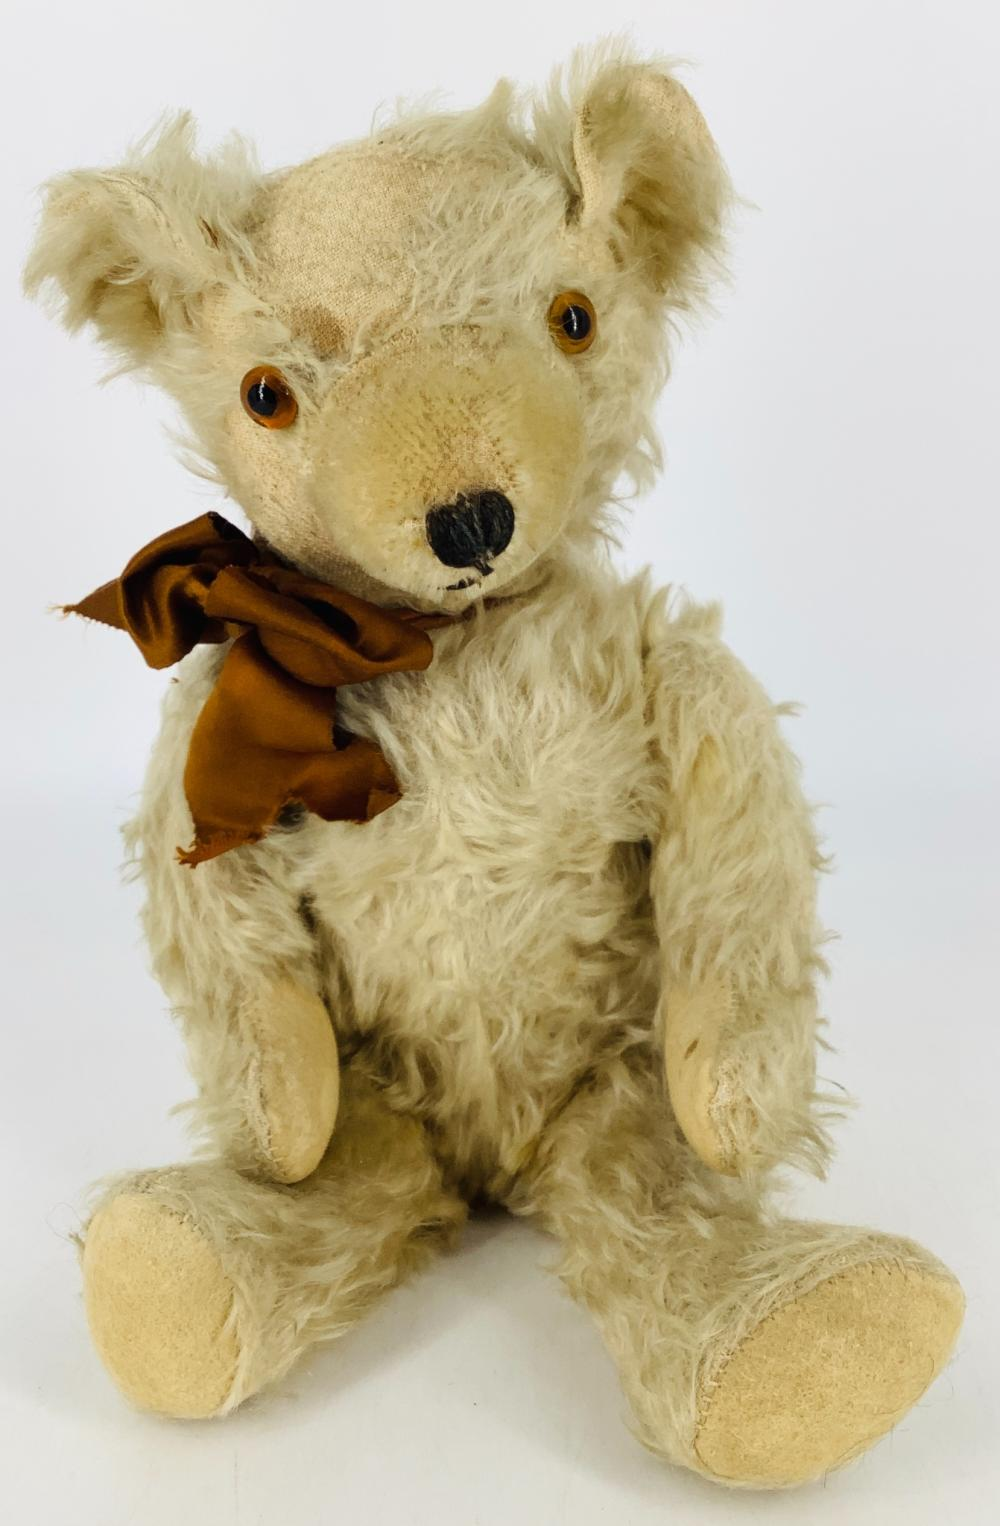 """Vintage blonde mohair teddy bear. 15 1/2"""" bear with applied ears, glass eyes, shaved snout with stitched nose, disk jointed at neck, shoulders and hips, felt paw pads. Mohair is worn and thin particularly on head and ..."""